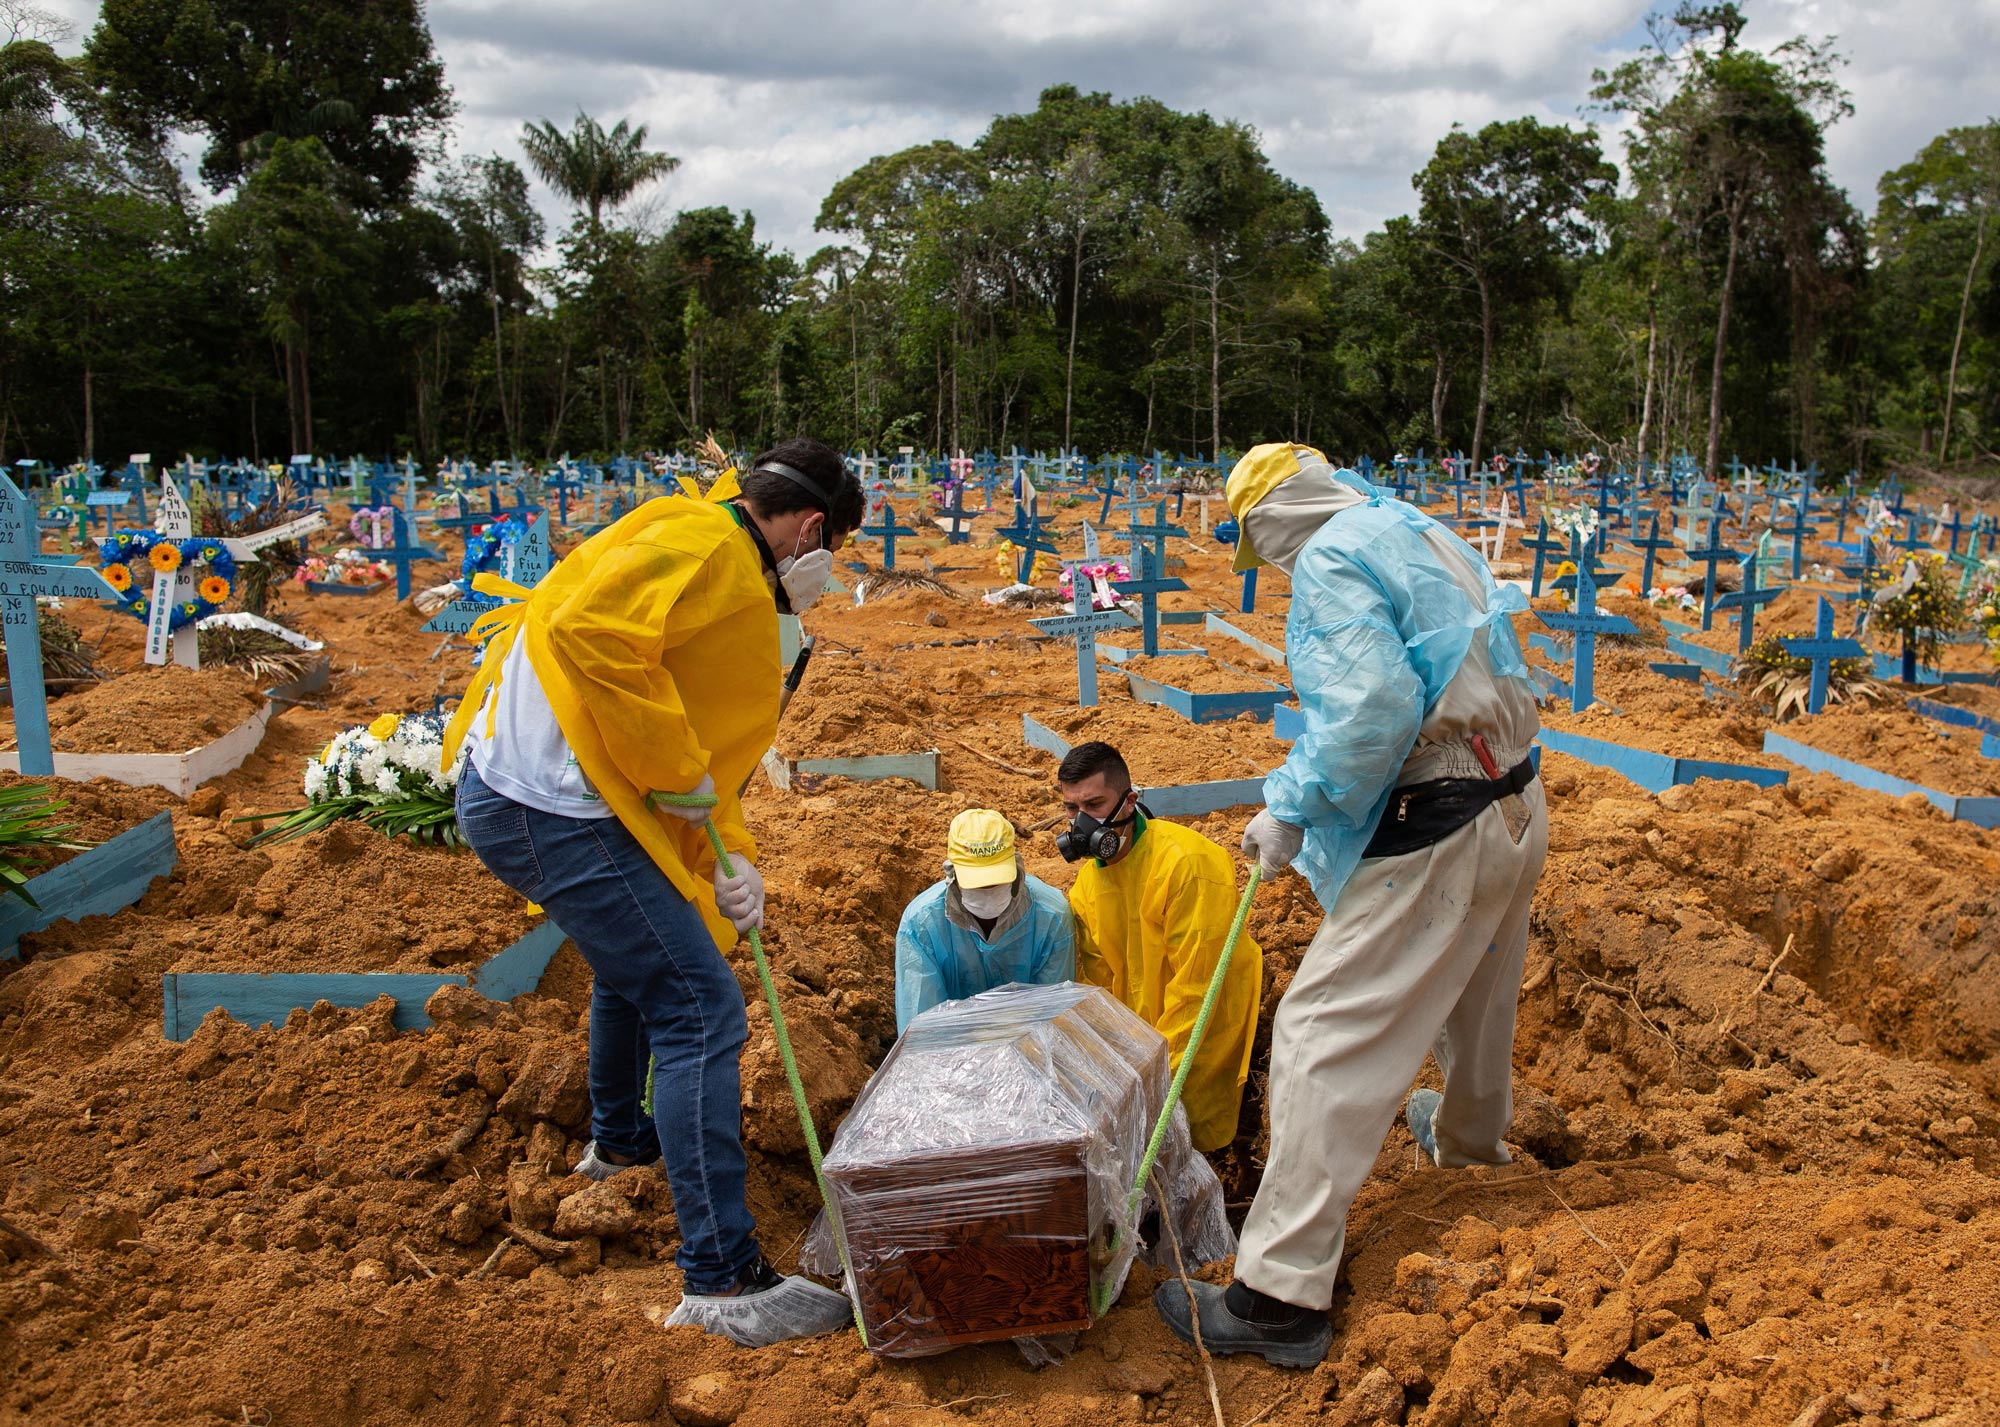 A burial takes place in an area reserved for COVID-19 victims at the Nossa Senhora Aparecida cemetery in Manaus, Brazil, on January 5.